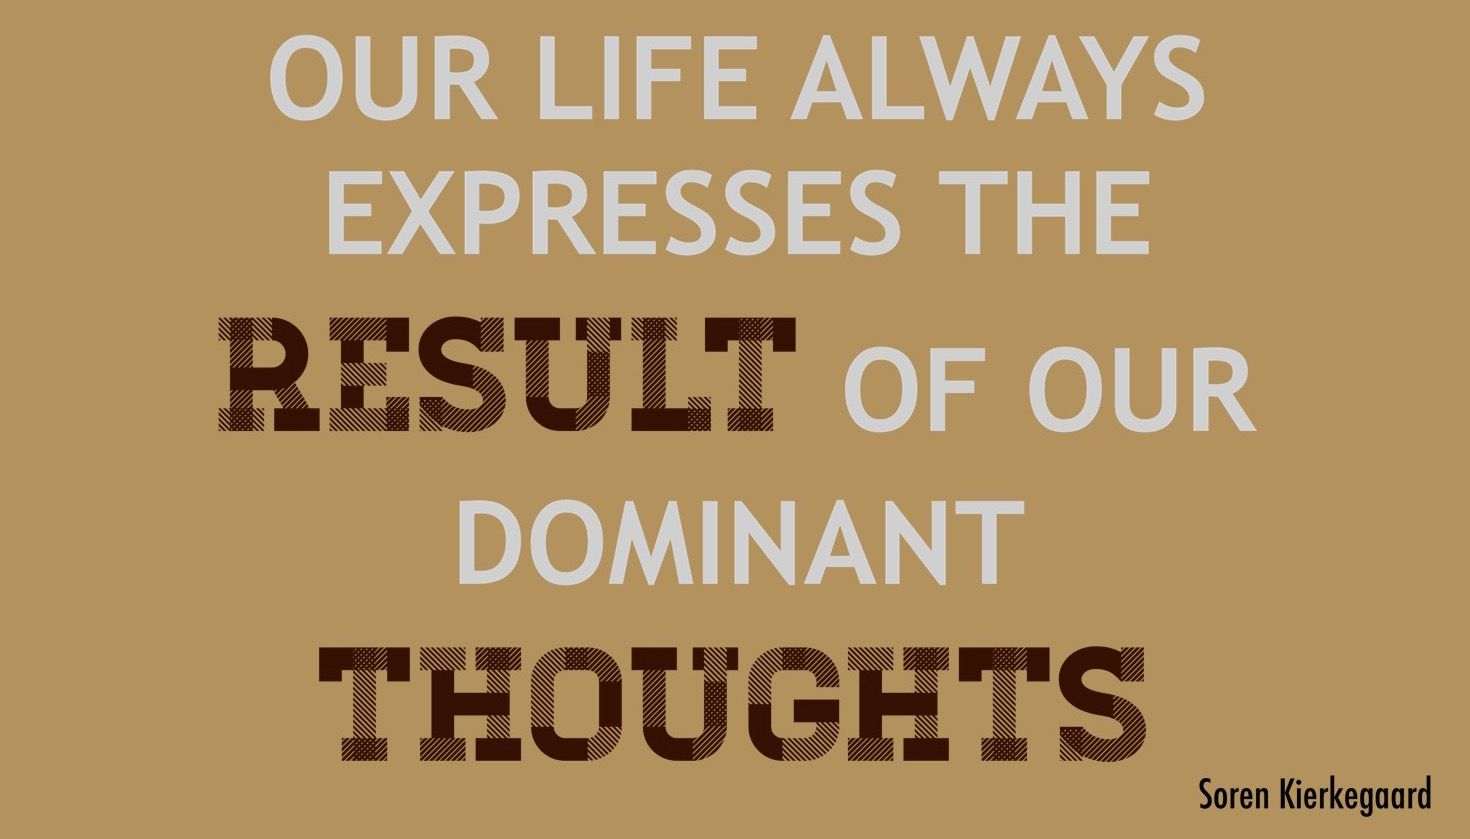 Today's Thought - May 15th, 2015 - #LoveYourHome #Quotes